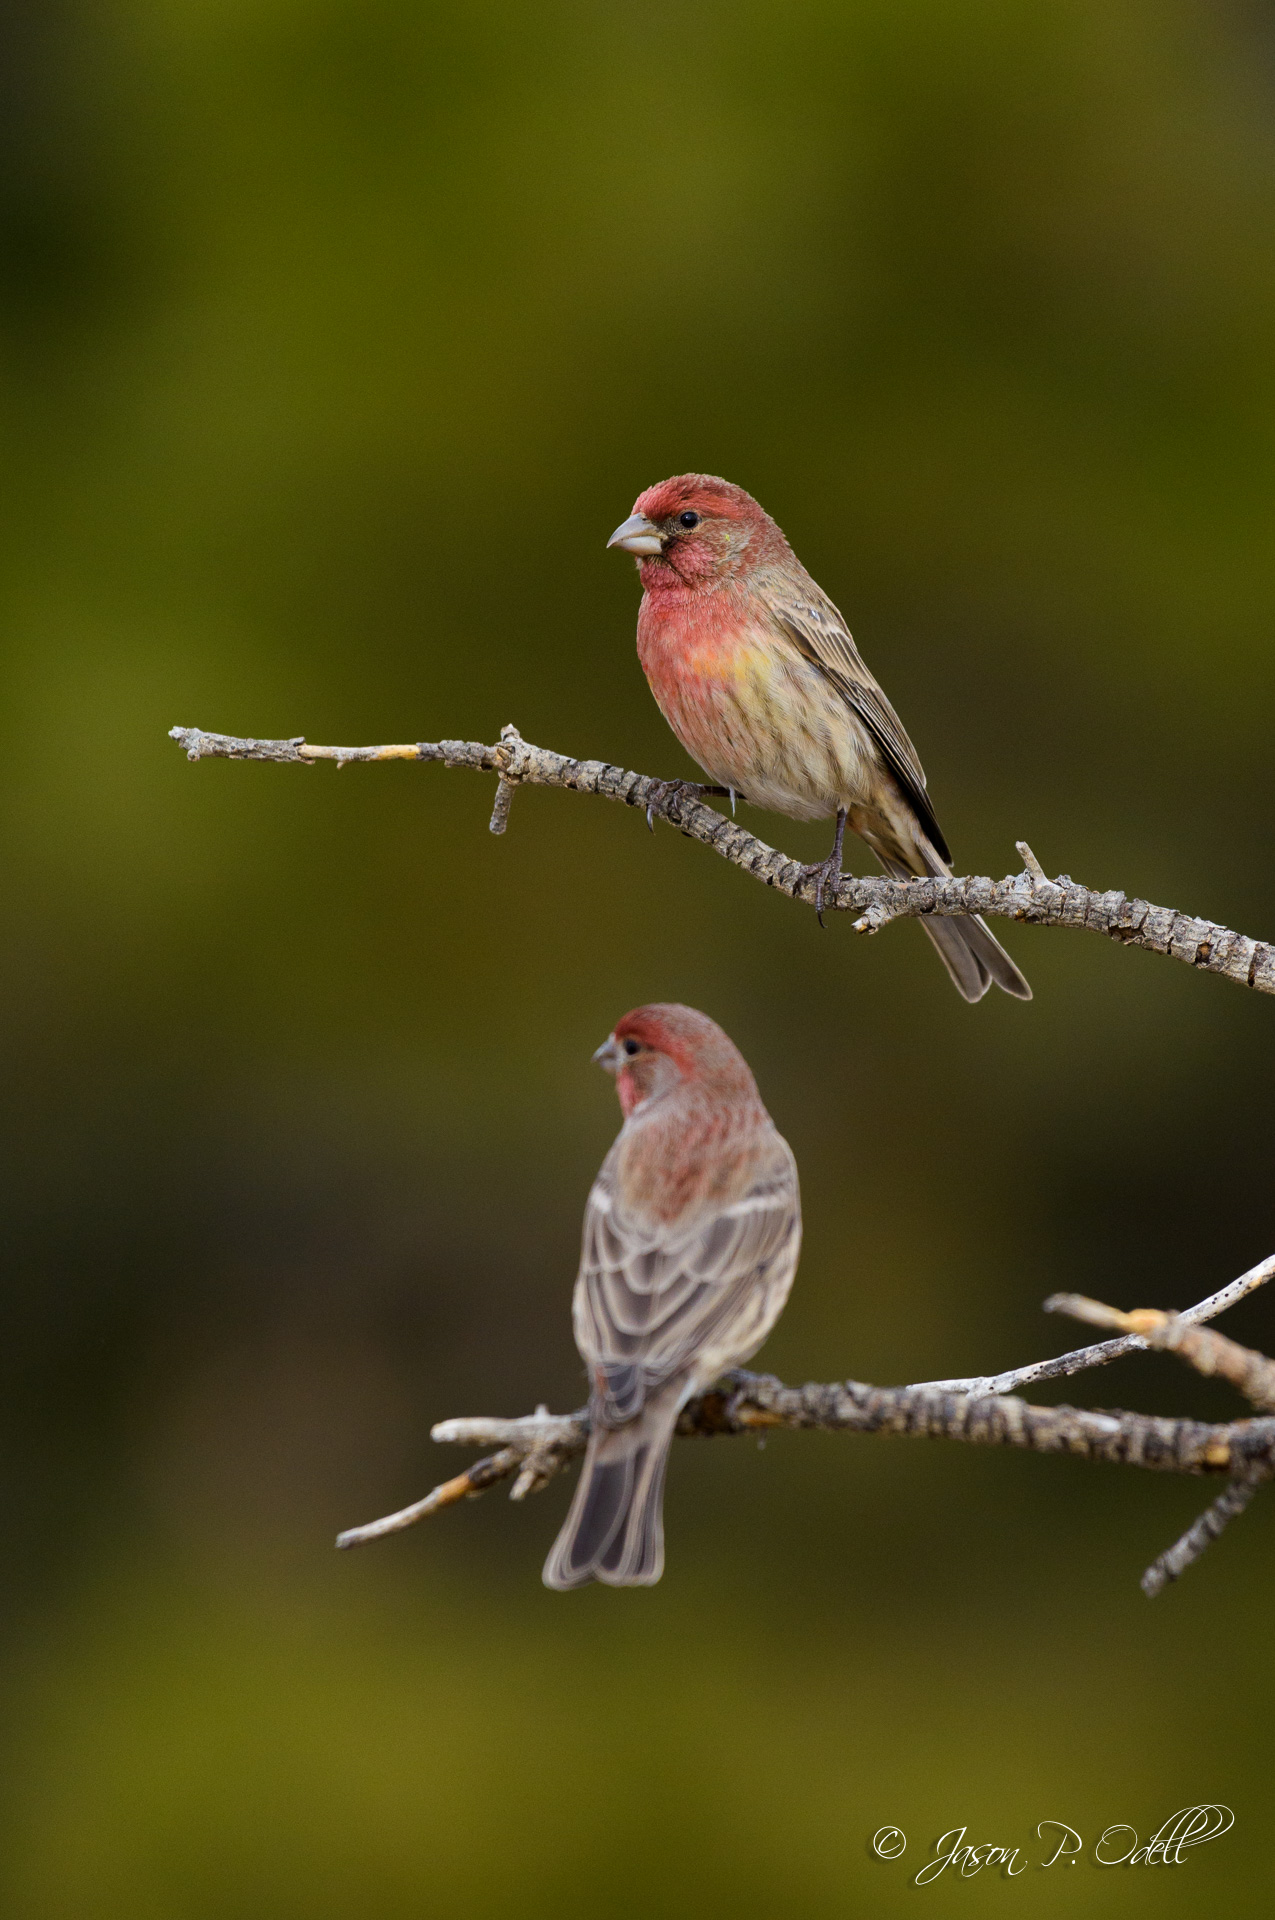 Male house finches from approximately 30 feet away